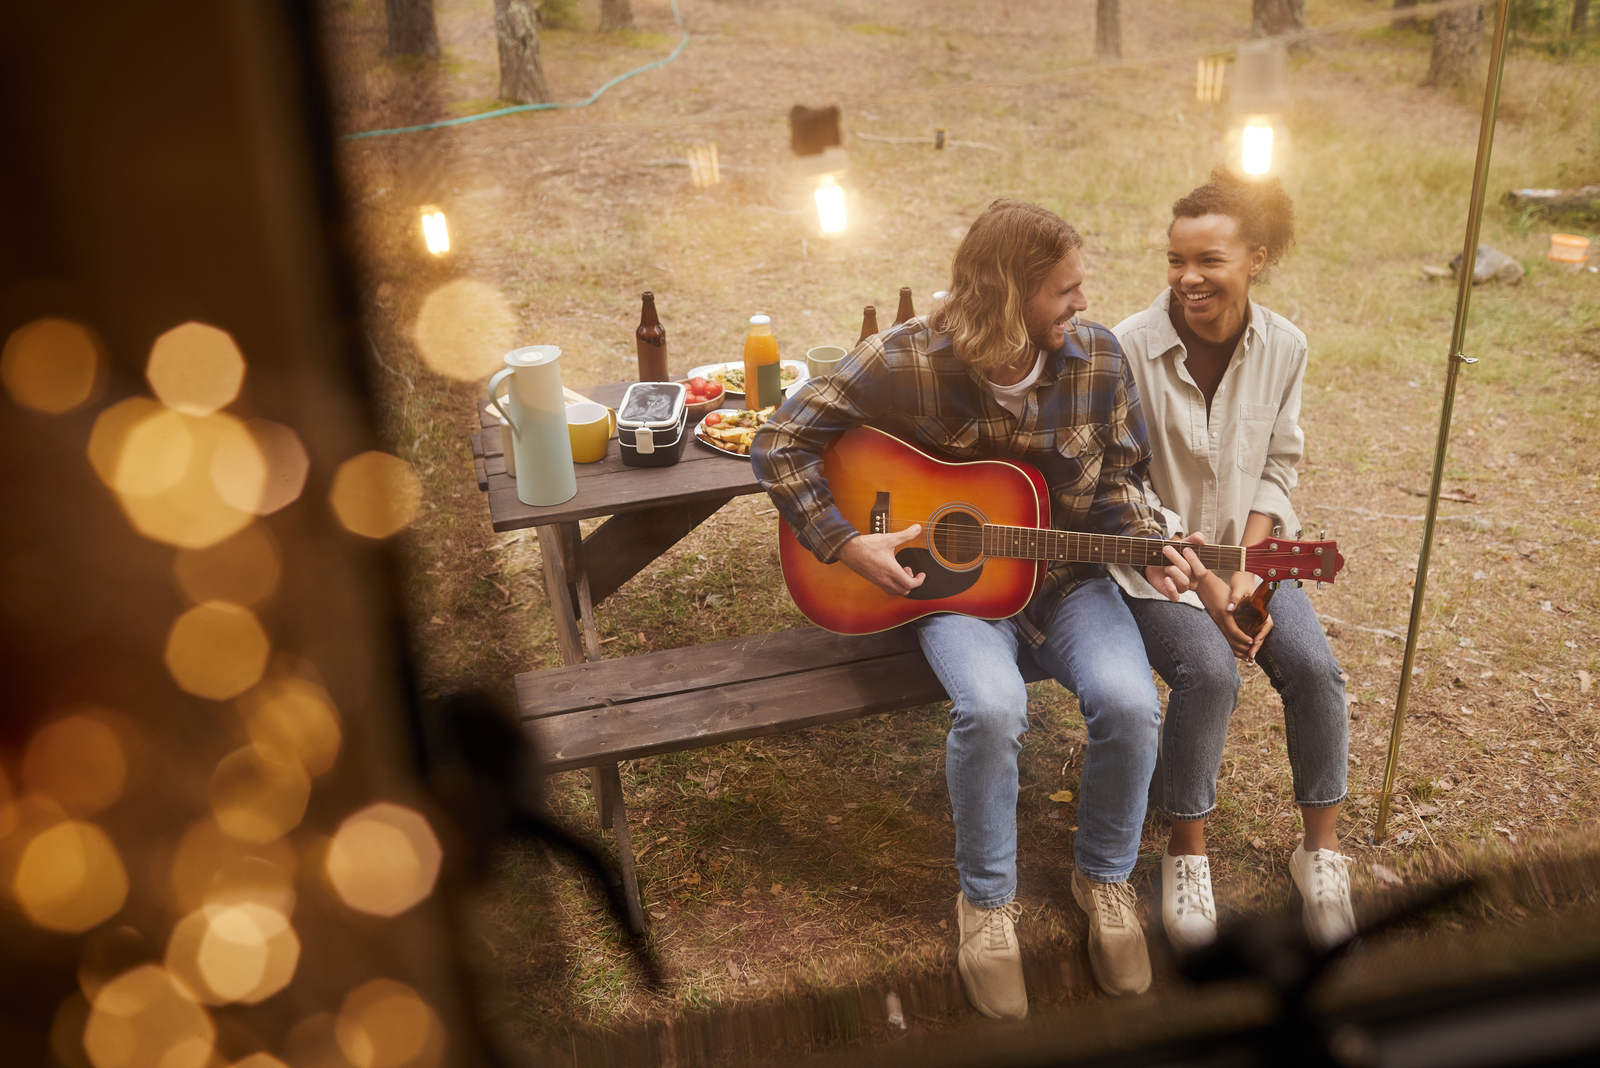 a man playing guitar a woman smiling sits next to him on a bench